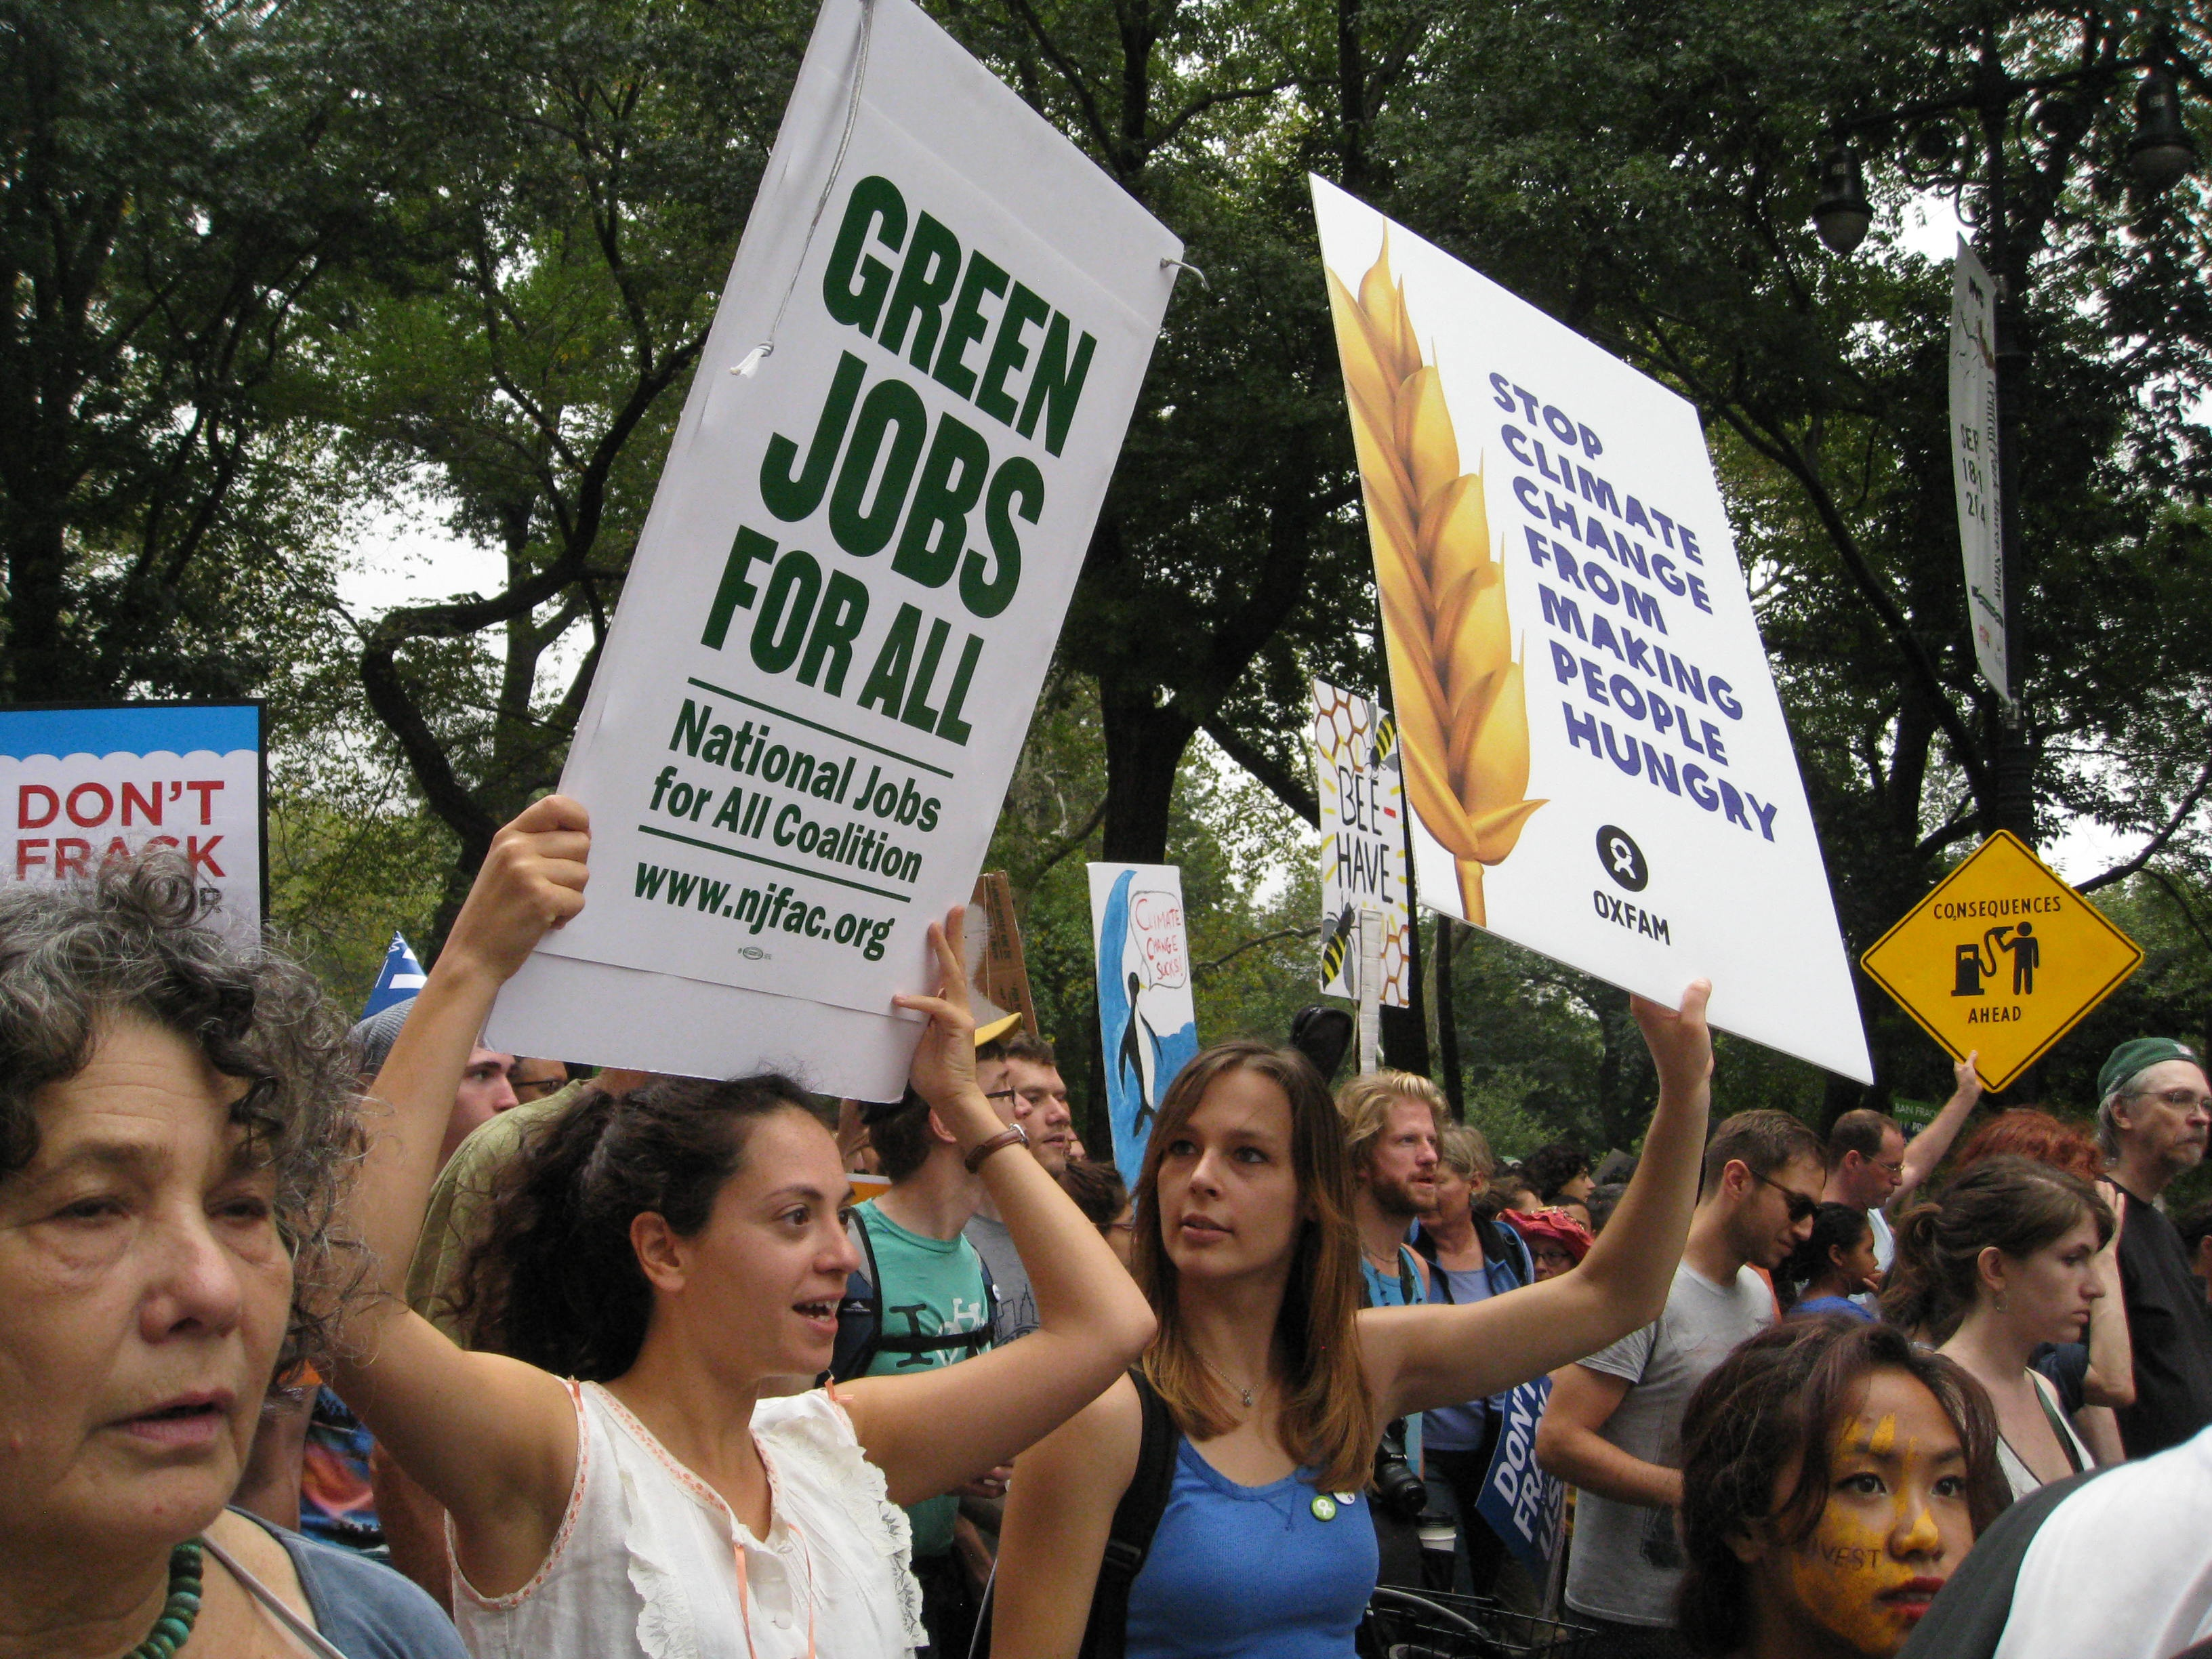 Green Jobs for All